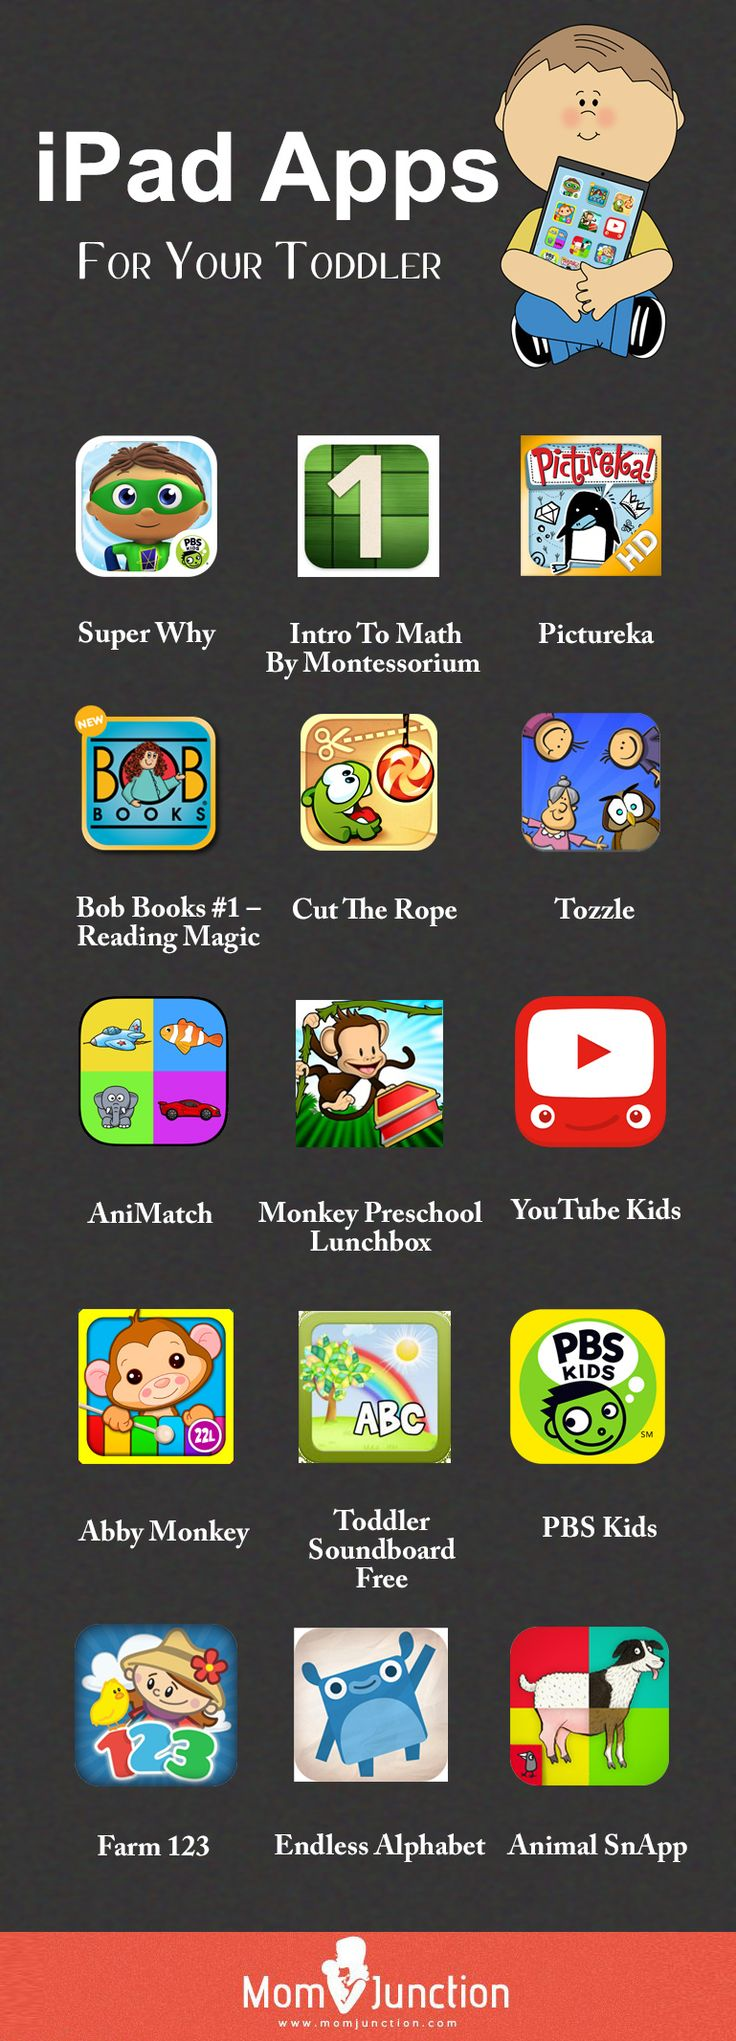 22 Fun And Learning IPad Apps For Toddlers